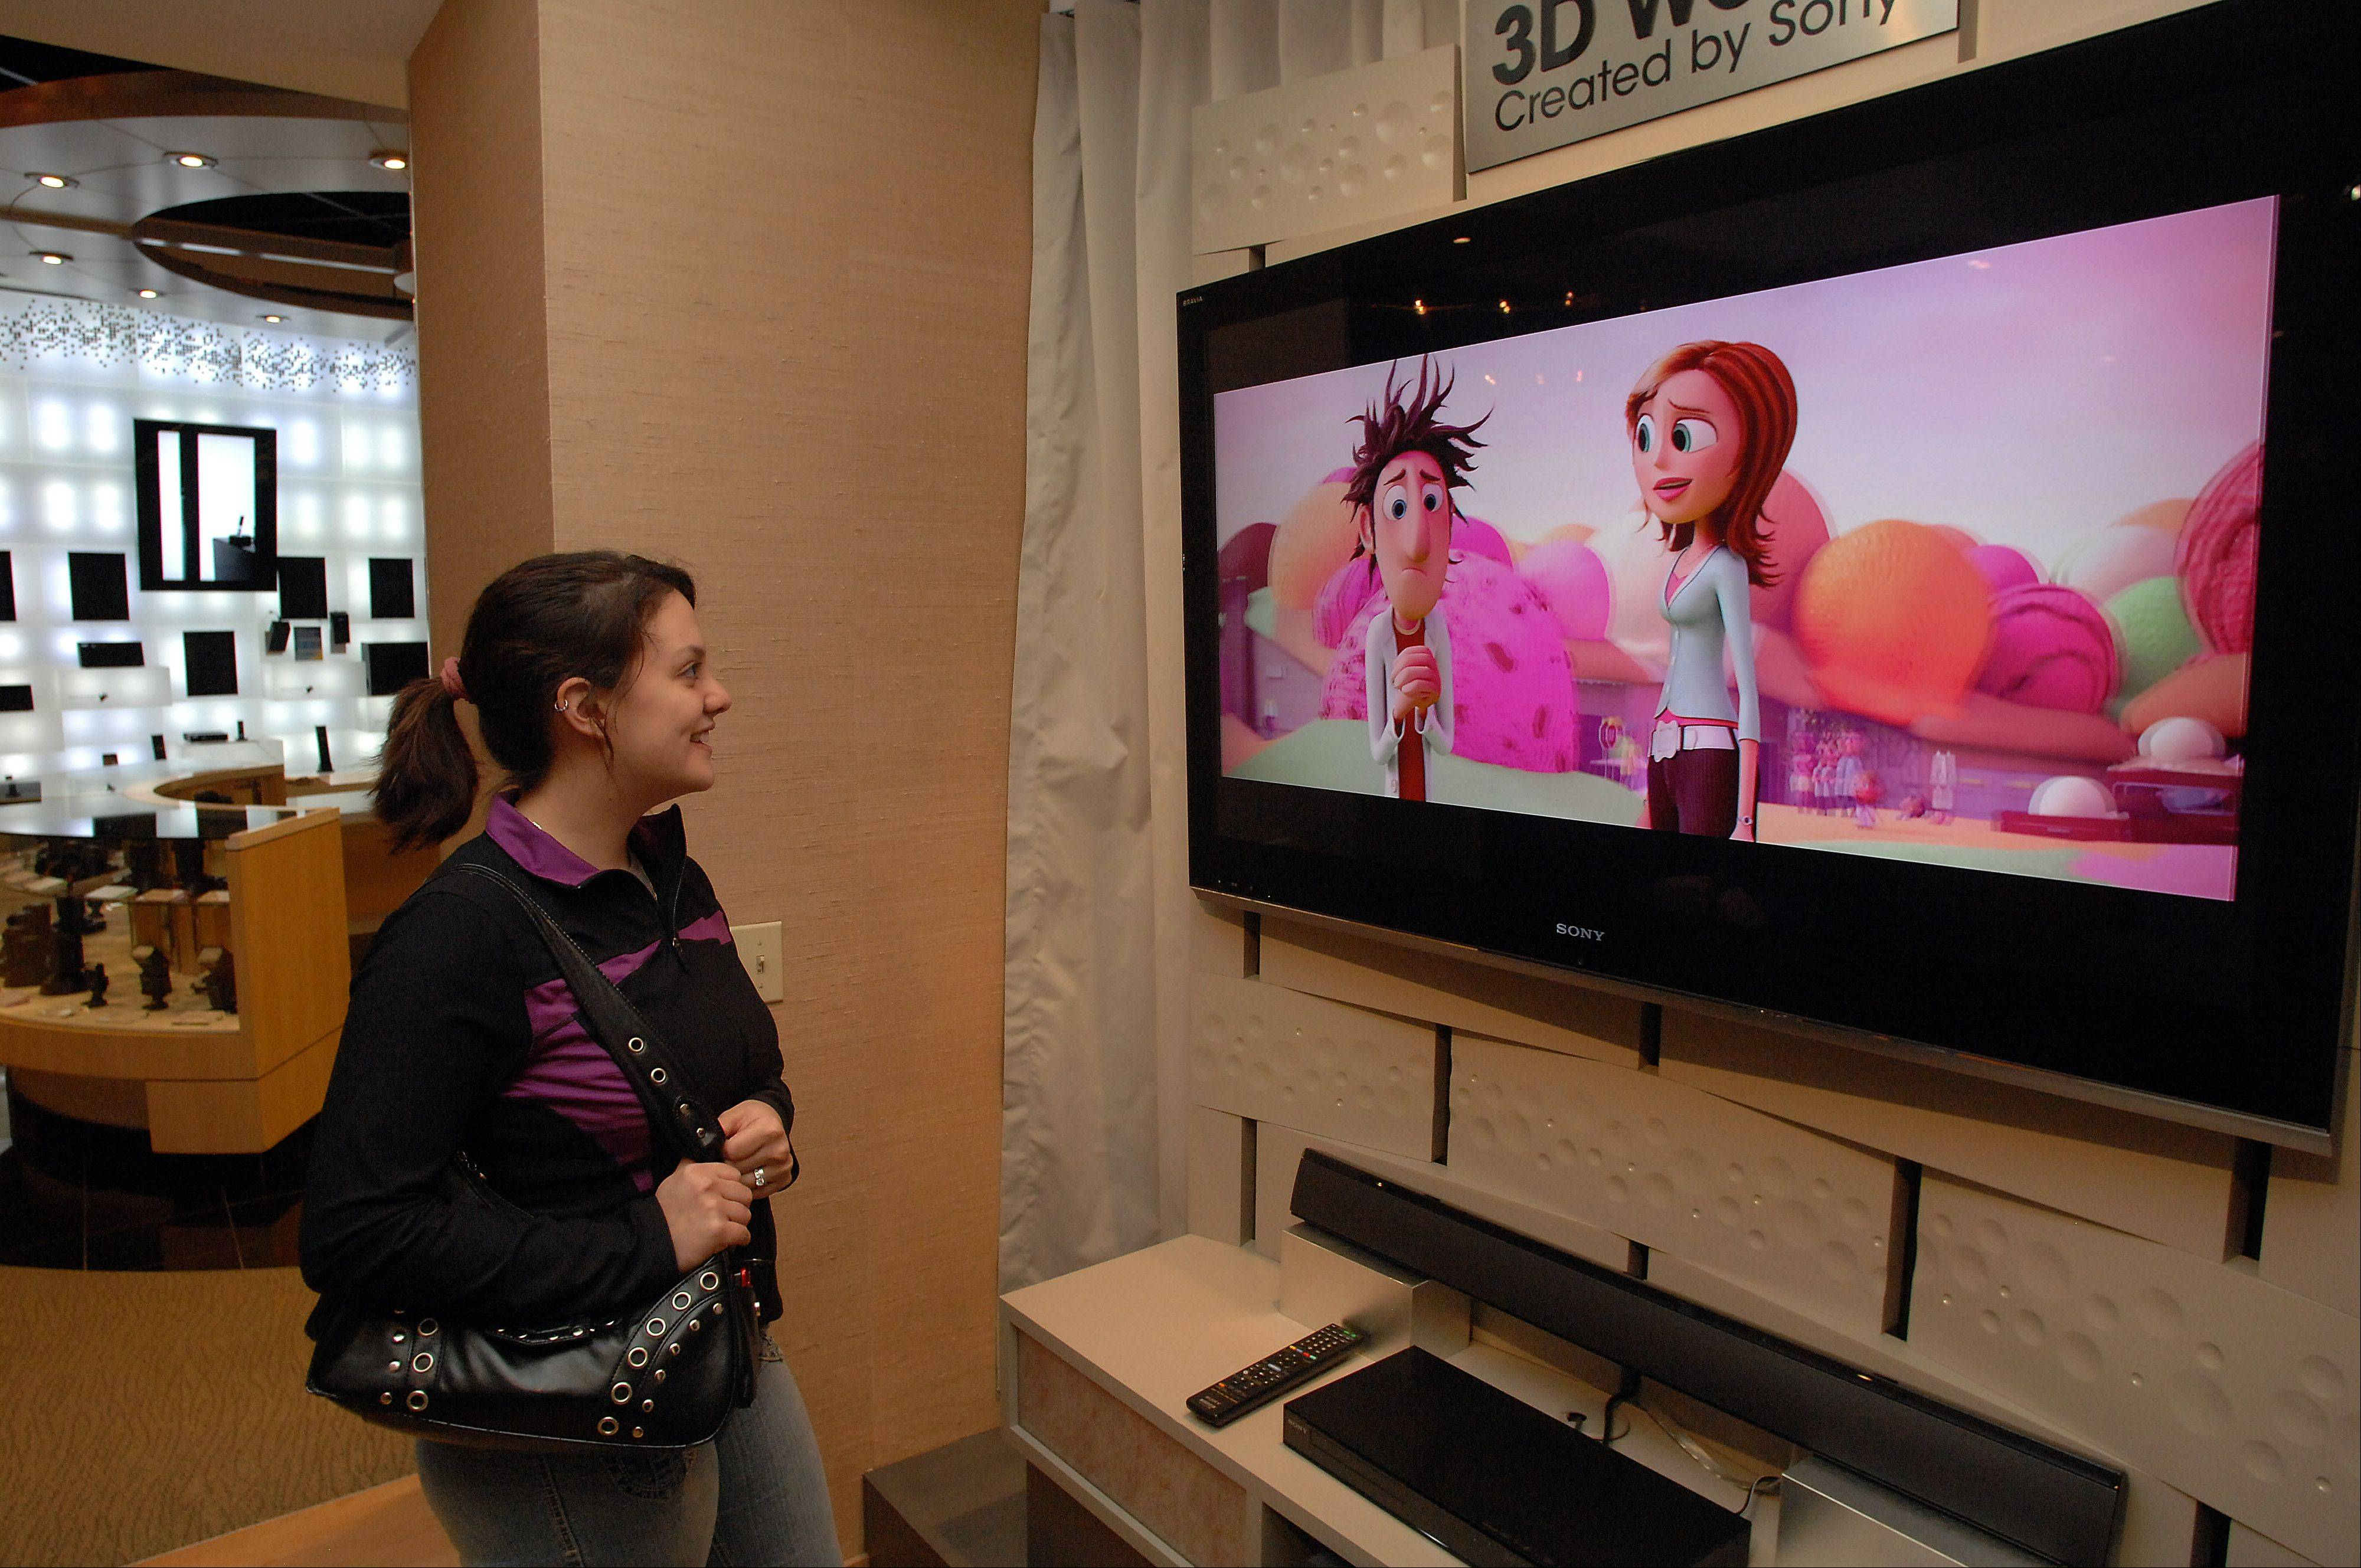 If you�re looking for top-brand TVs or TVs with extra features, the best time to buy is February or March, experts say.